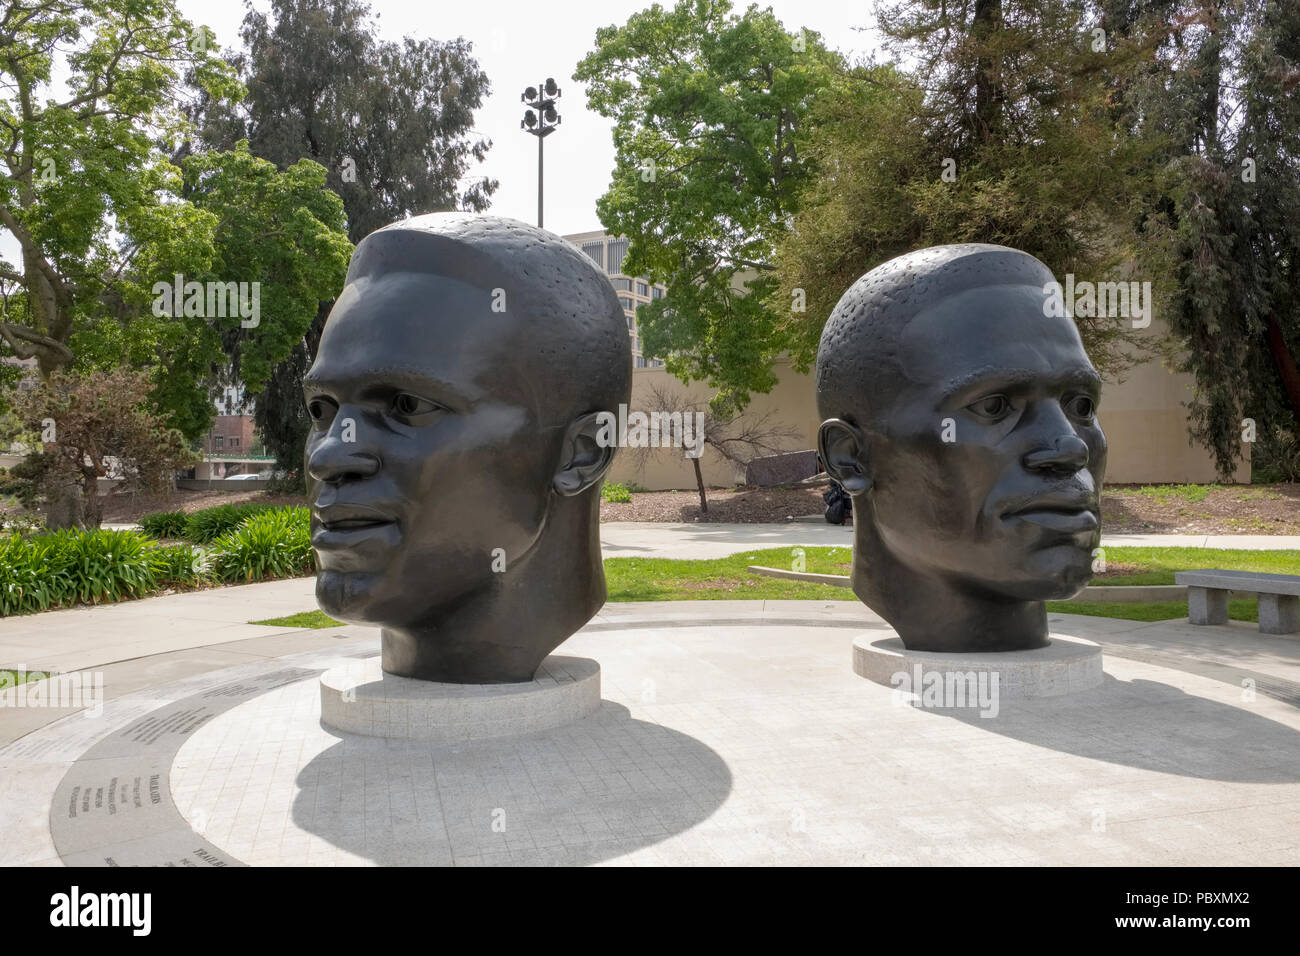 Statues of black Olympic athletes, Mack Robinson and his younger brother Jackie Robinson outside City Hall, Pasadena, California, CA, USA - Stock Image